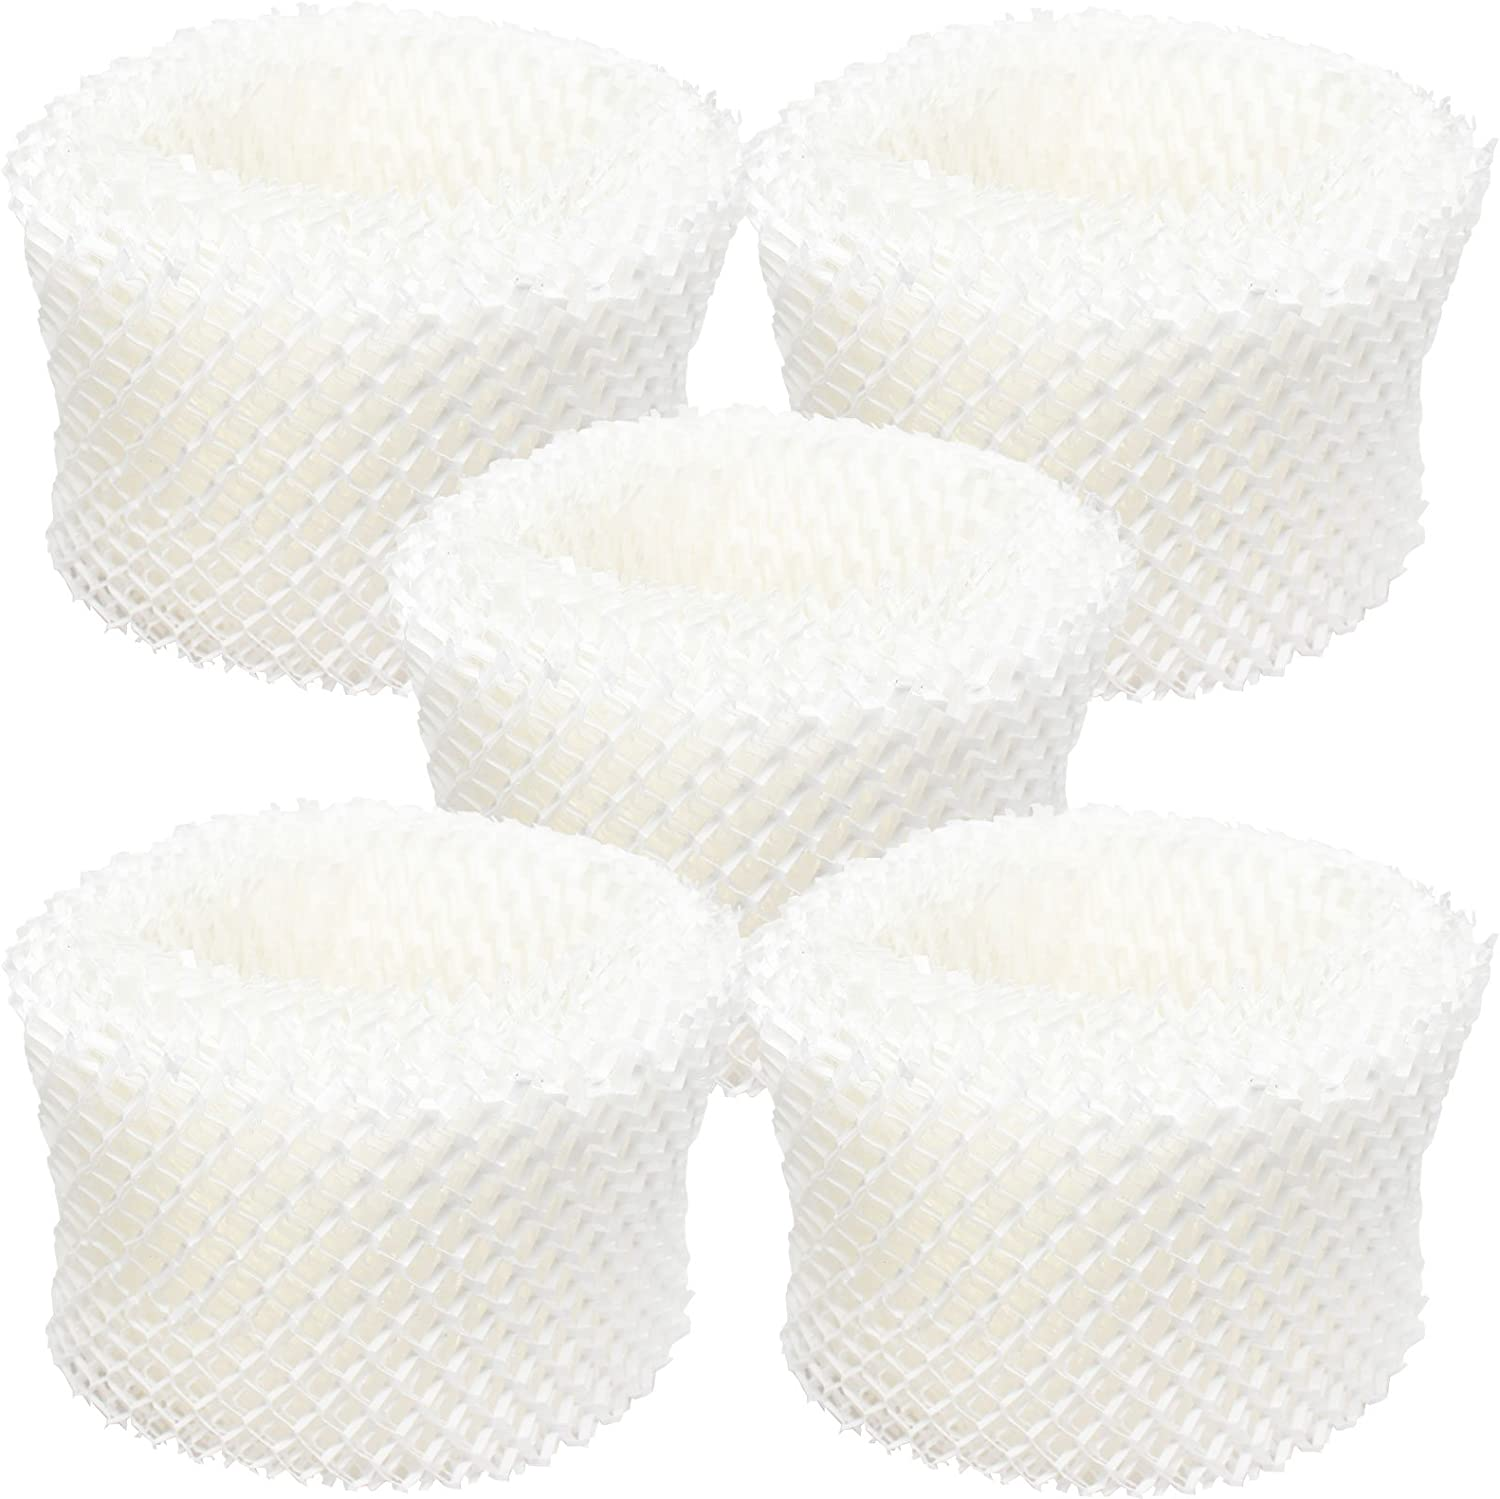 Upstart Battery 5-Pack Replacement for Honeywell HCM2001 Humidifier Filter - Compatible with Honeywell HAC-504 HAC-504AW Air Filter